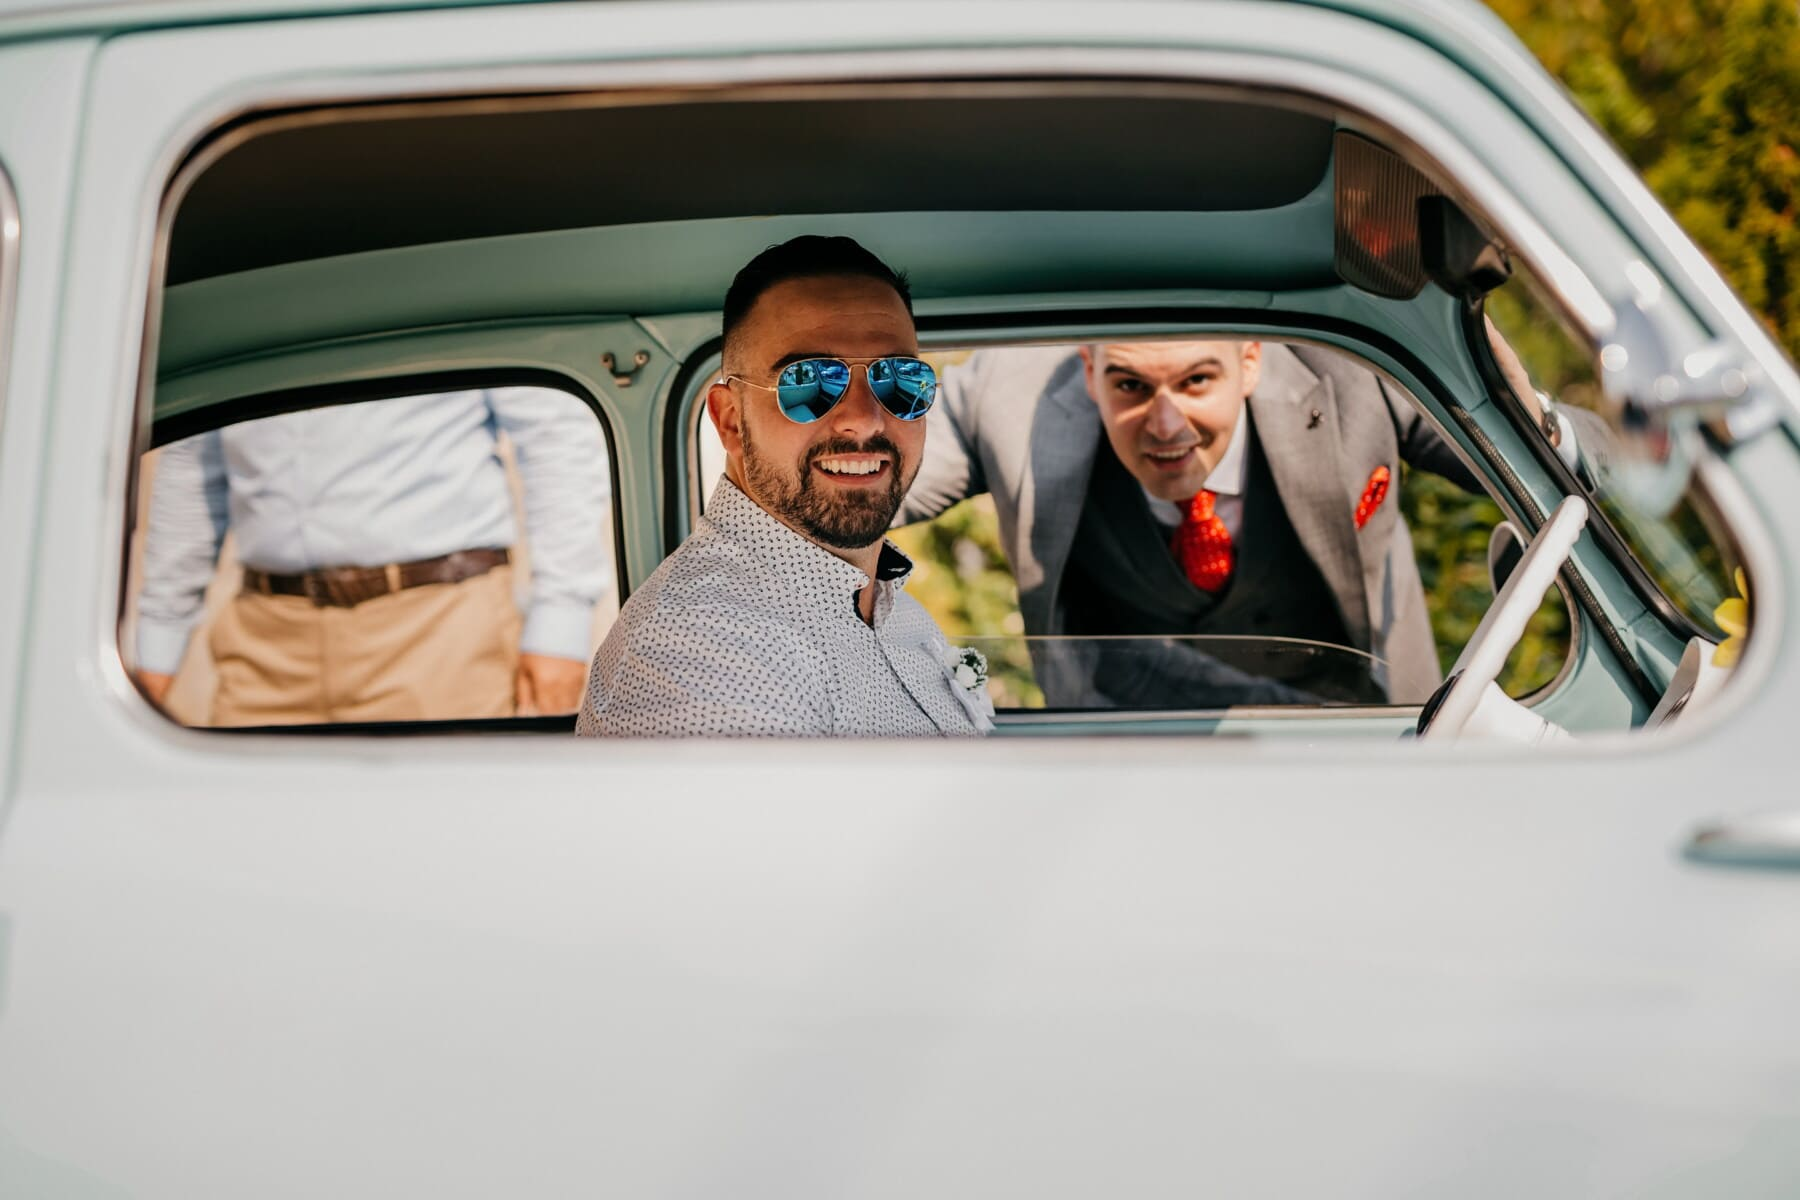 Fiat 750, man, car, sitting, oldtimer, driver, sunglasses, mustache, smiling, beard, driving